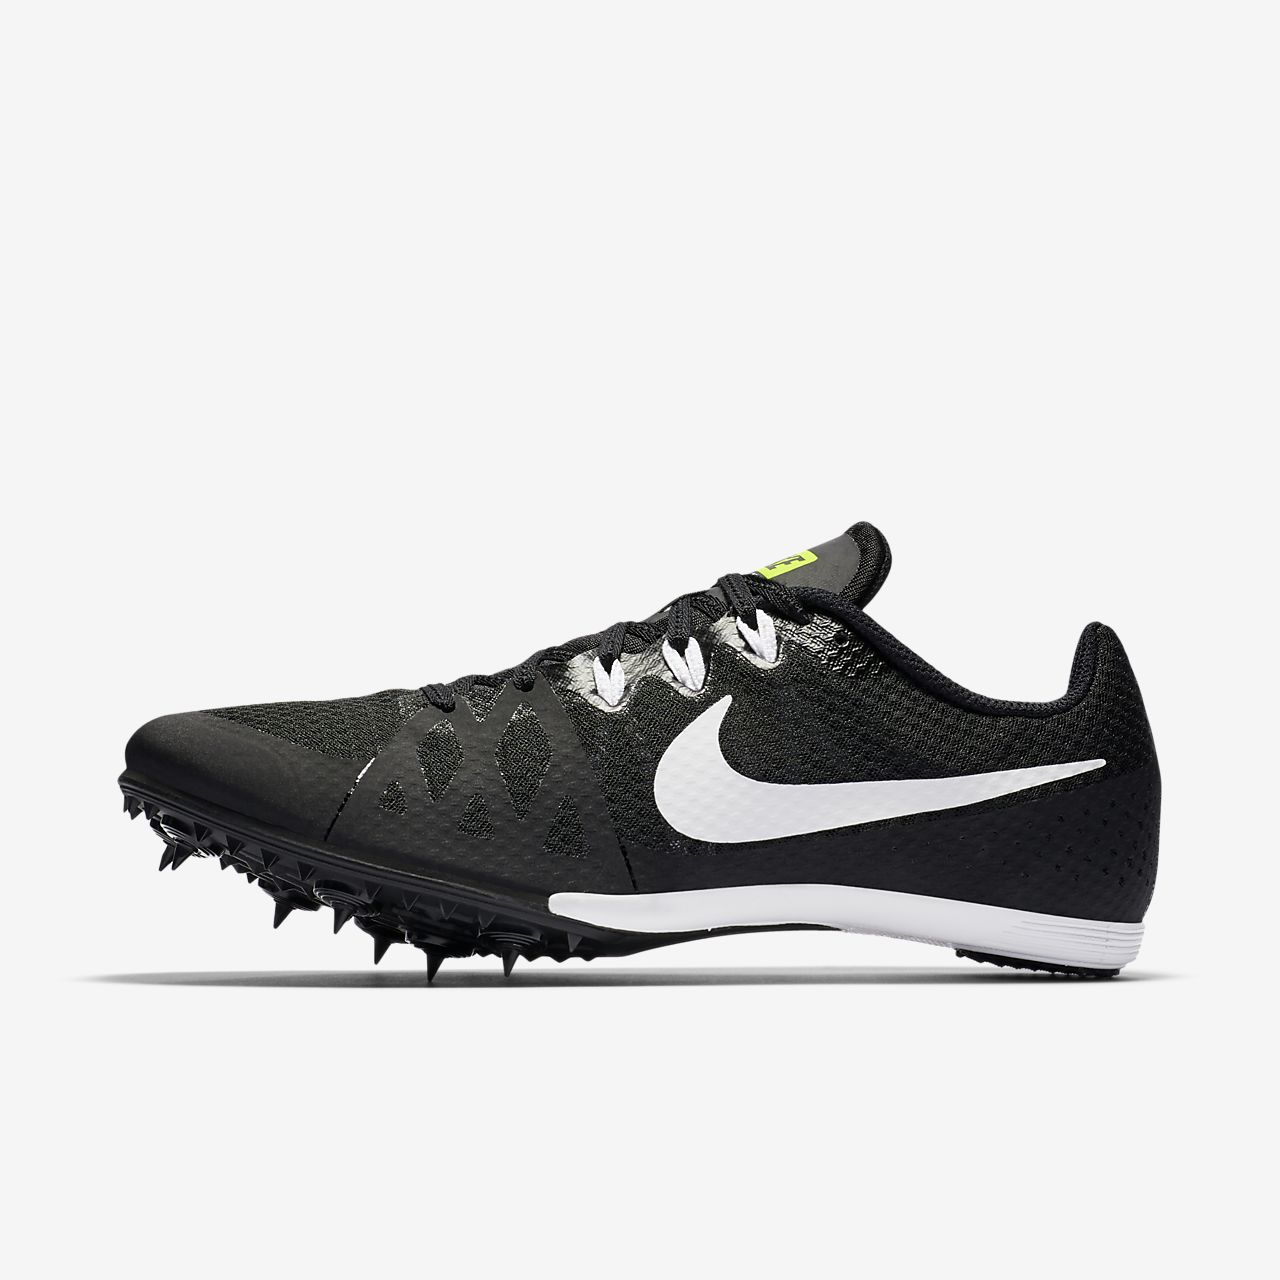 best website 84823 453c5 Unisex Distance Spike. Nike Zoom Rival M 8